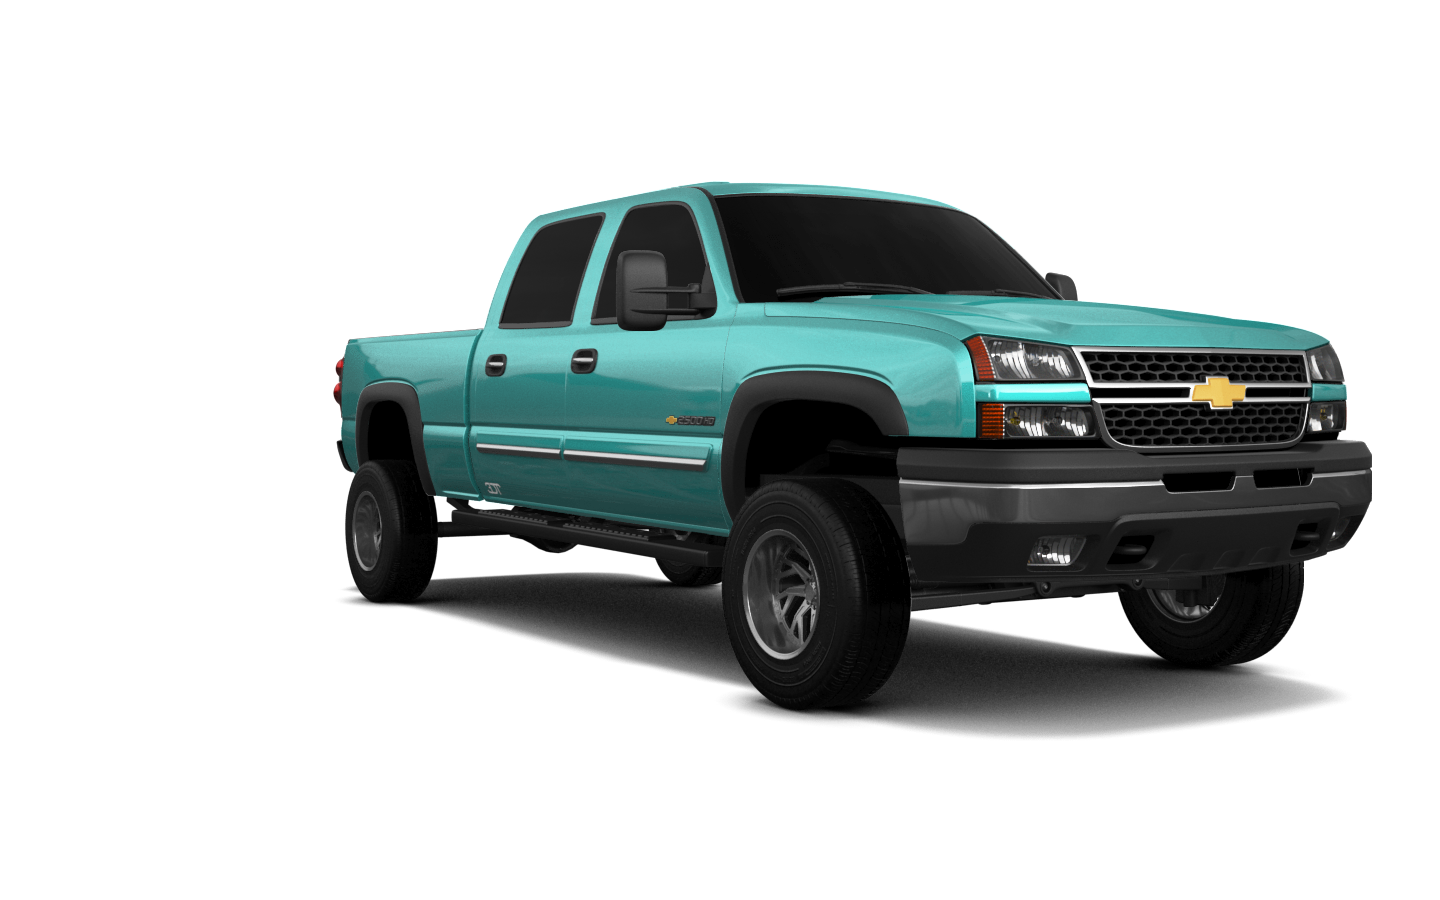 Chevrolet Silverado 2500 HD Long Box'02